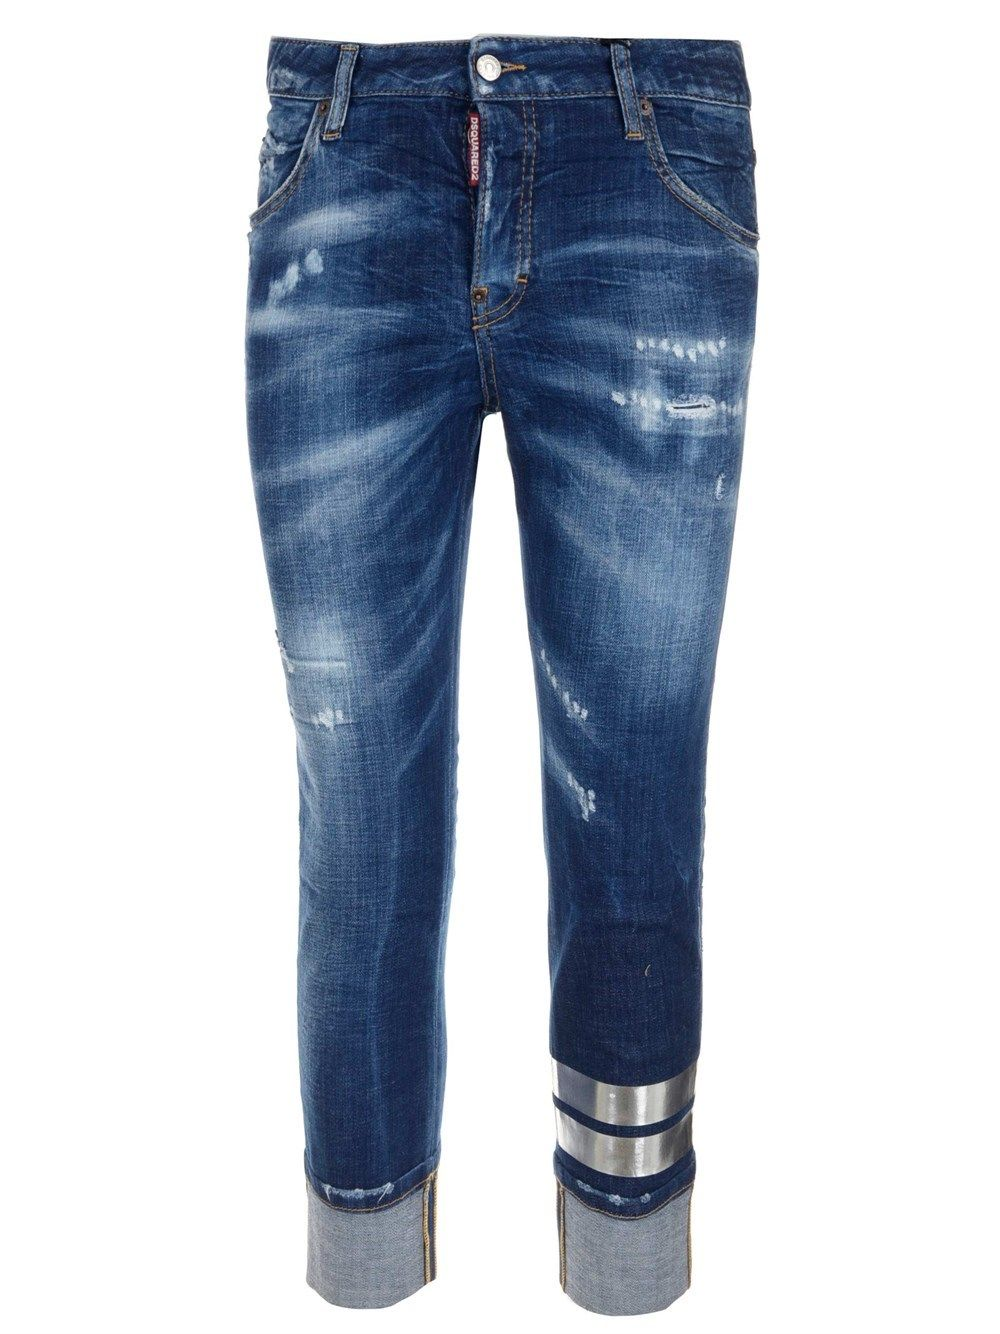 Dsquared2 Jeans DSQUARED2 WOMEN'S S75LB0457S30342470 BLUE OTHER MATERIALS JEANS